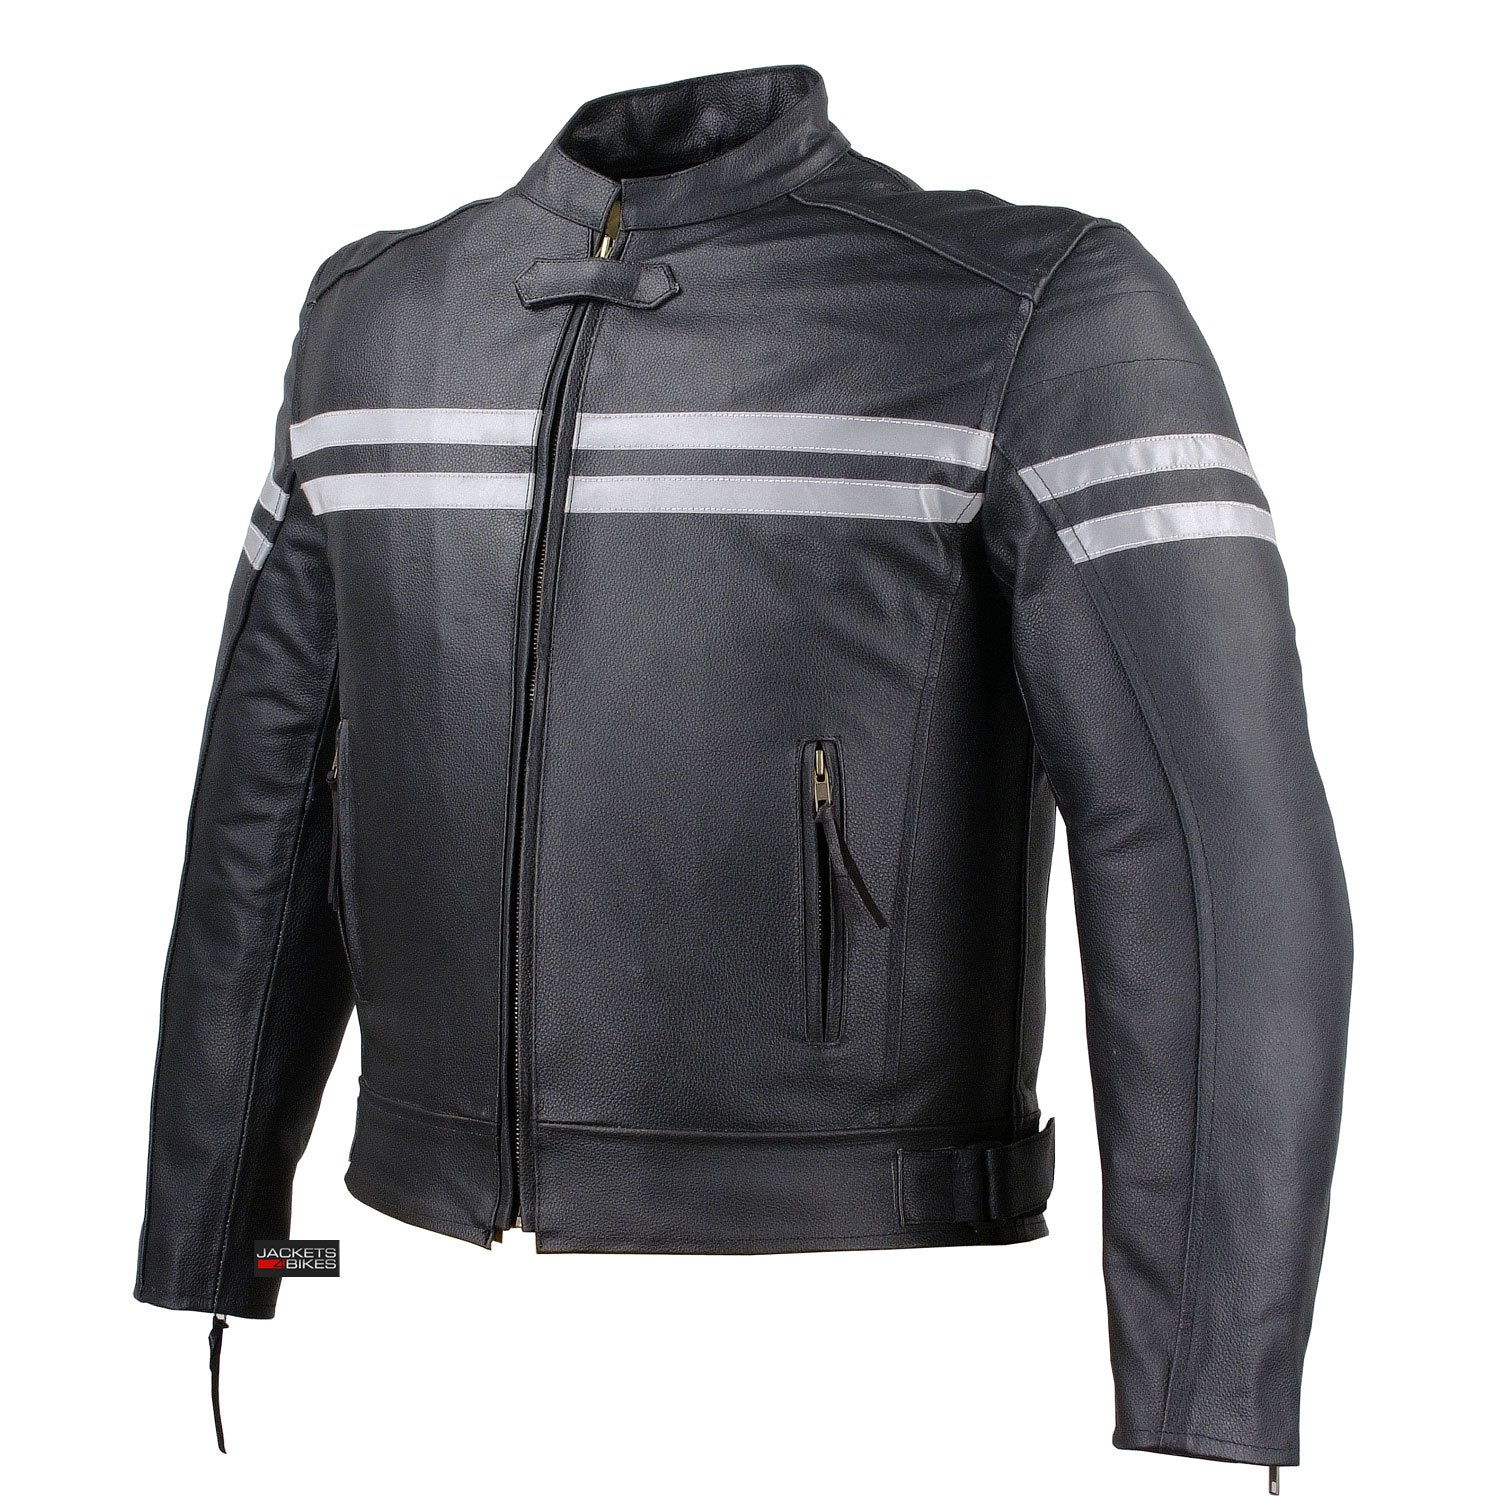 TRACK MOTORCYCLE BIKER ARMOR MEN LEATHER JACKET BLACK XL by Jackets 4 Bikes